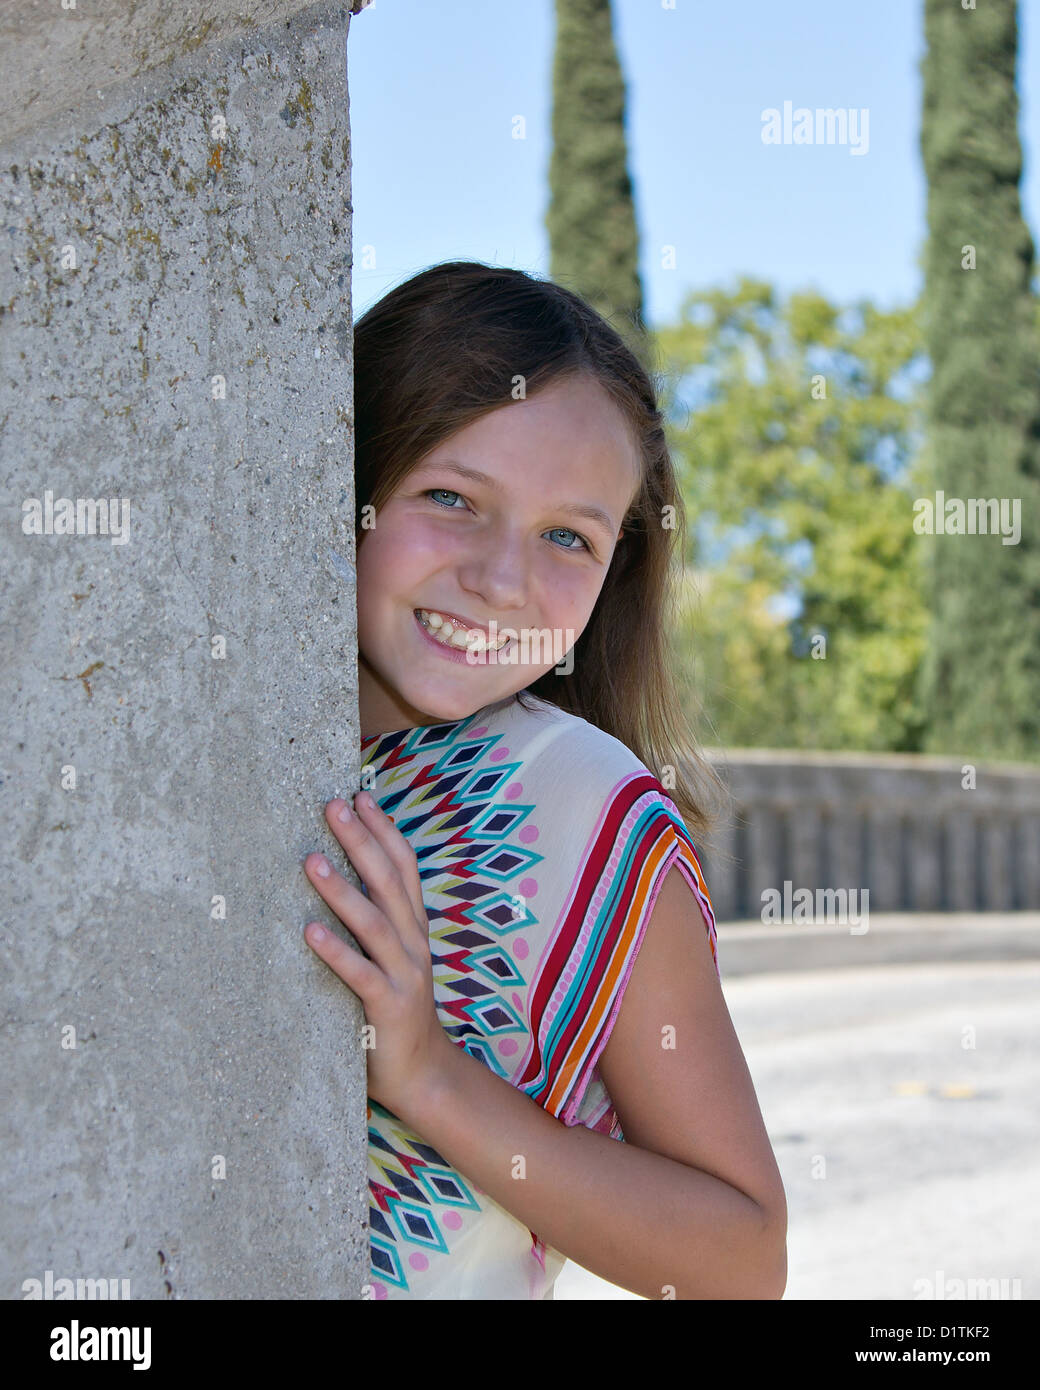 Young Pre Teen Girl Female Woman Torso Vertical Format: A Young Pre Teen Caucasian Girl Modeling 1960s Style Tie